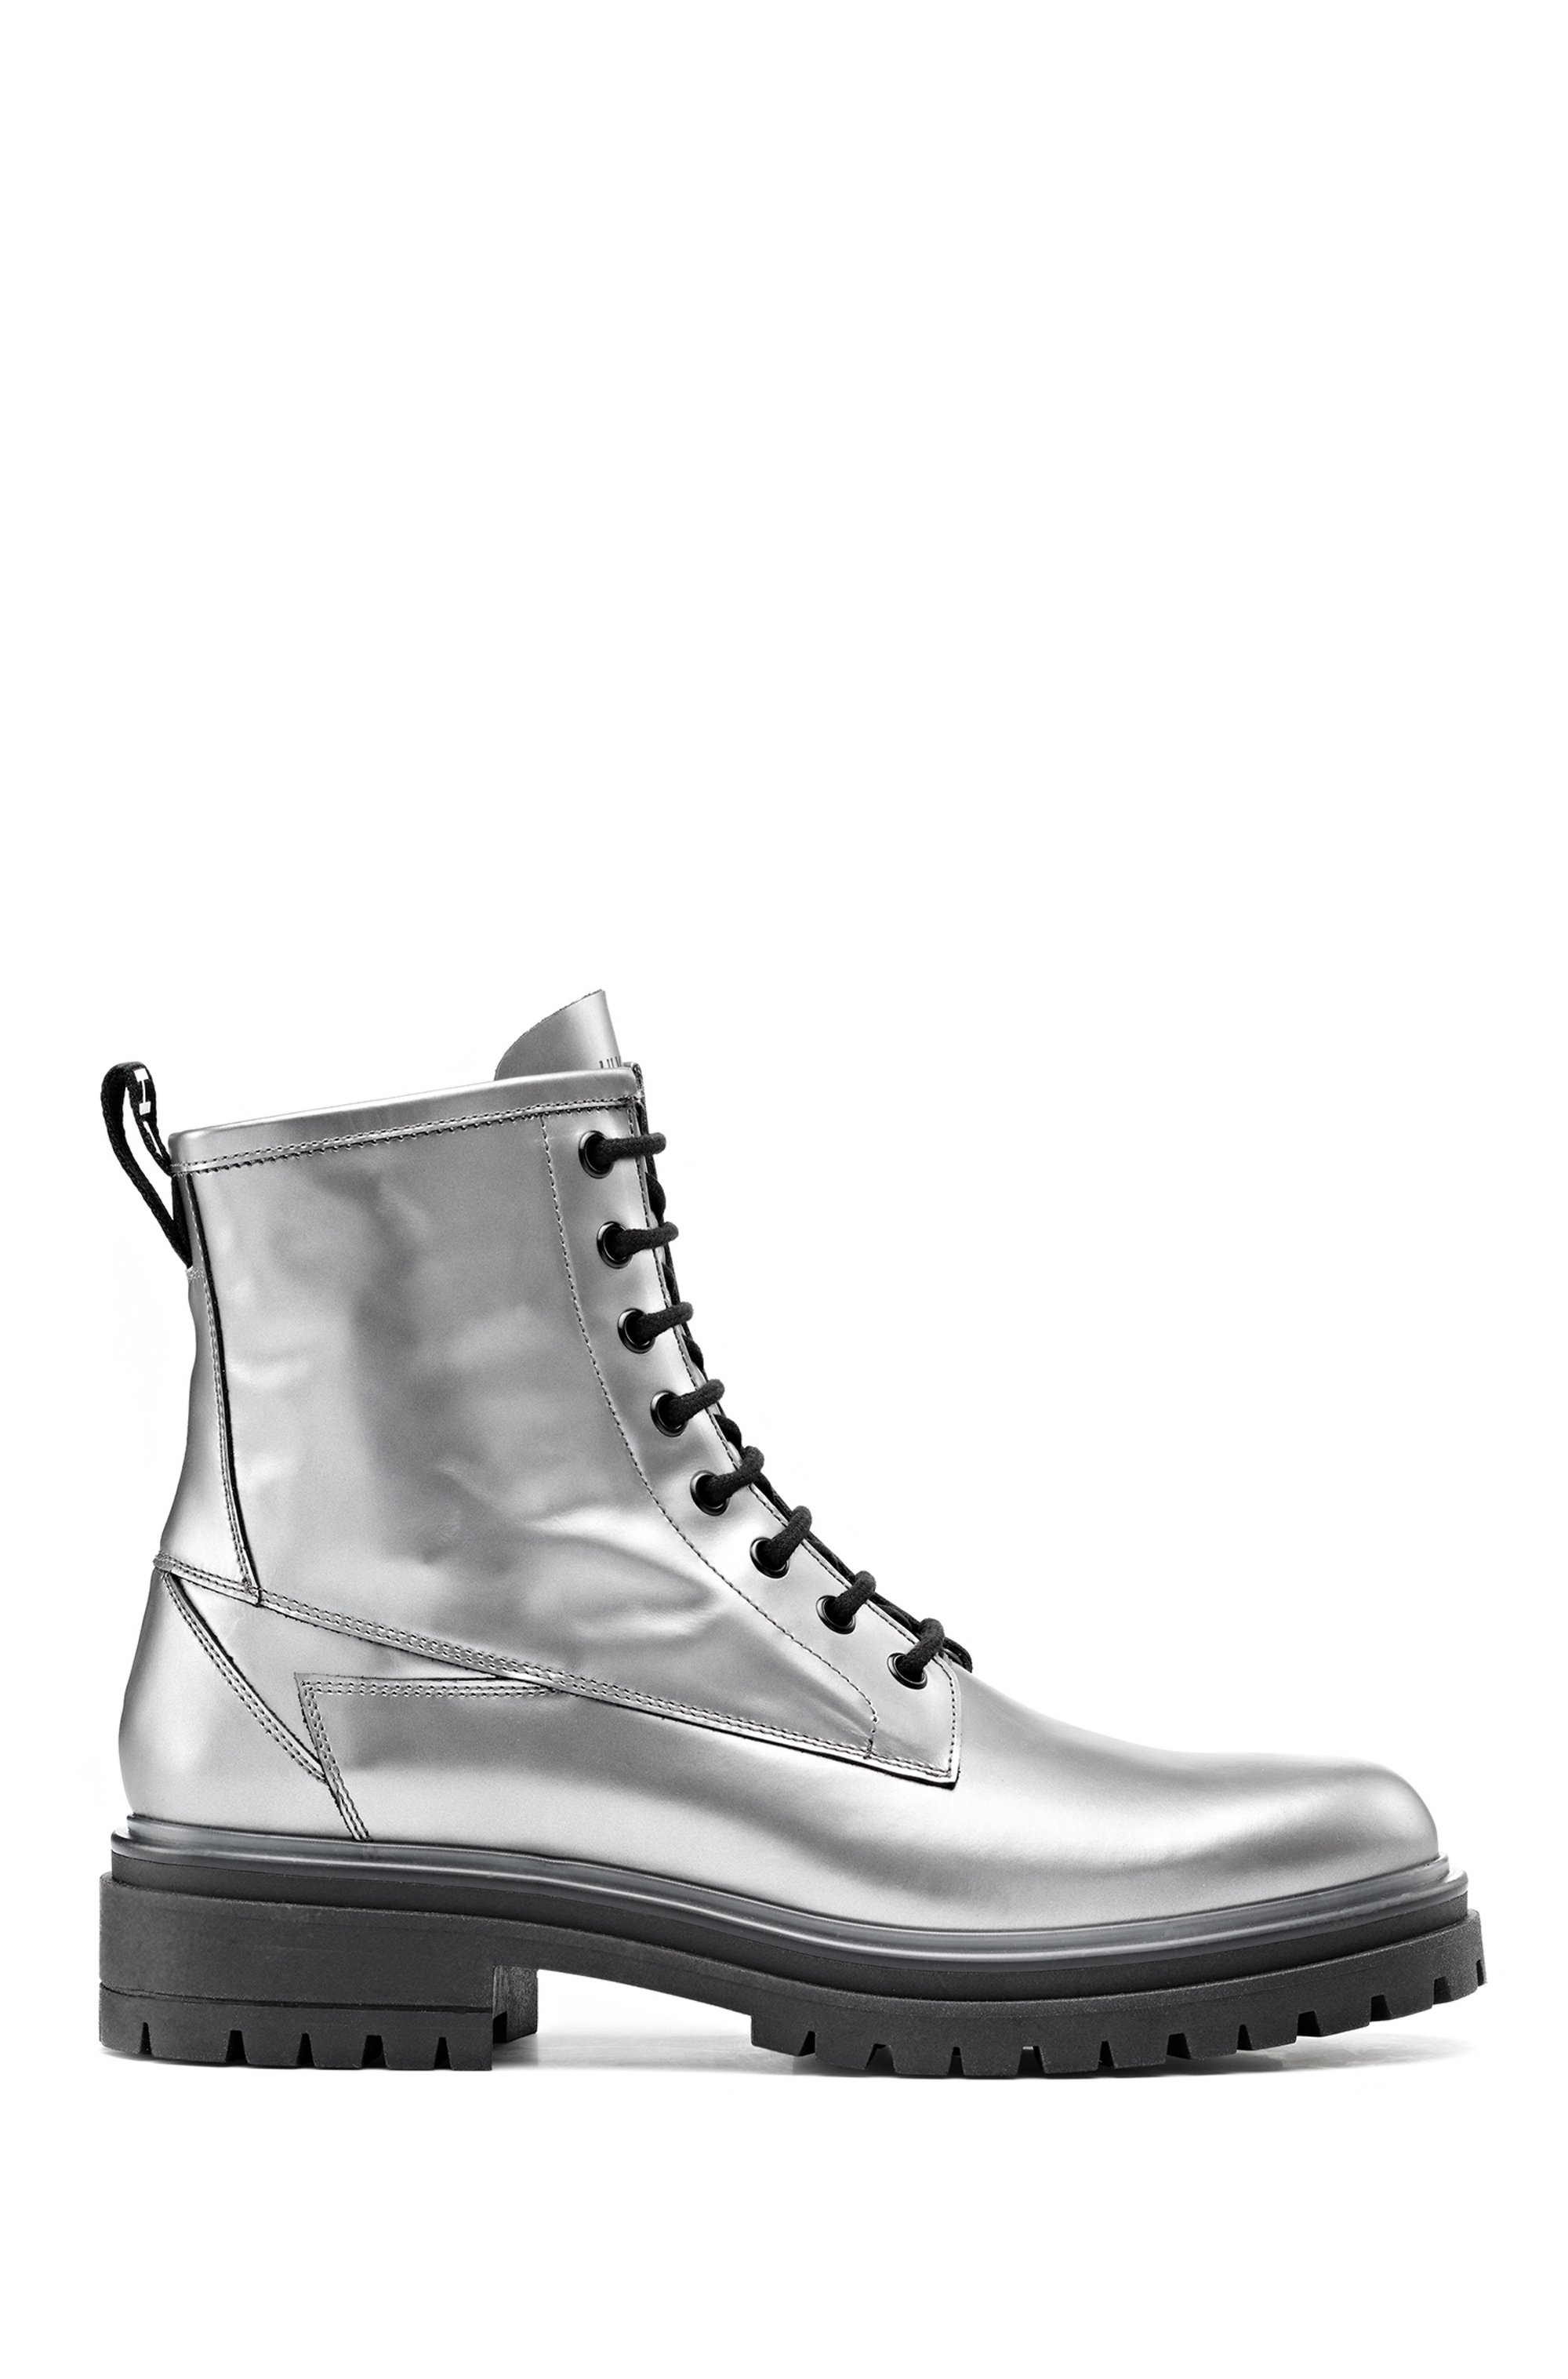 Lug-sole lace-up boots in laminated Italian leather, Silver